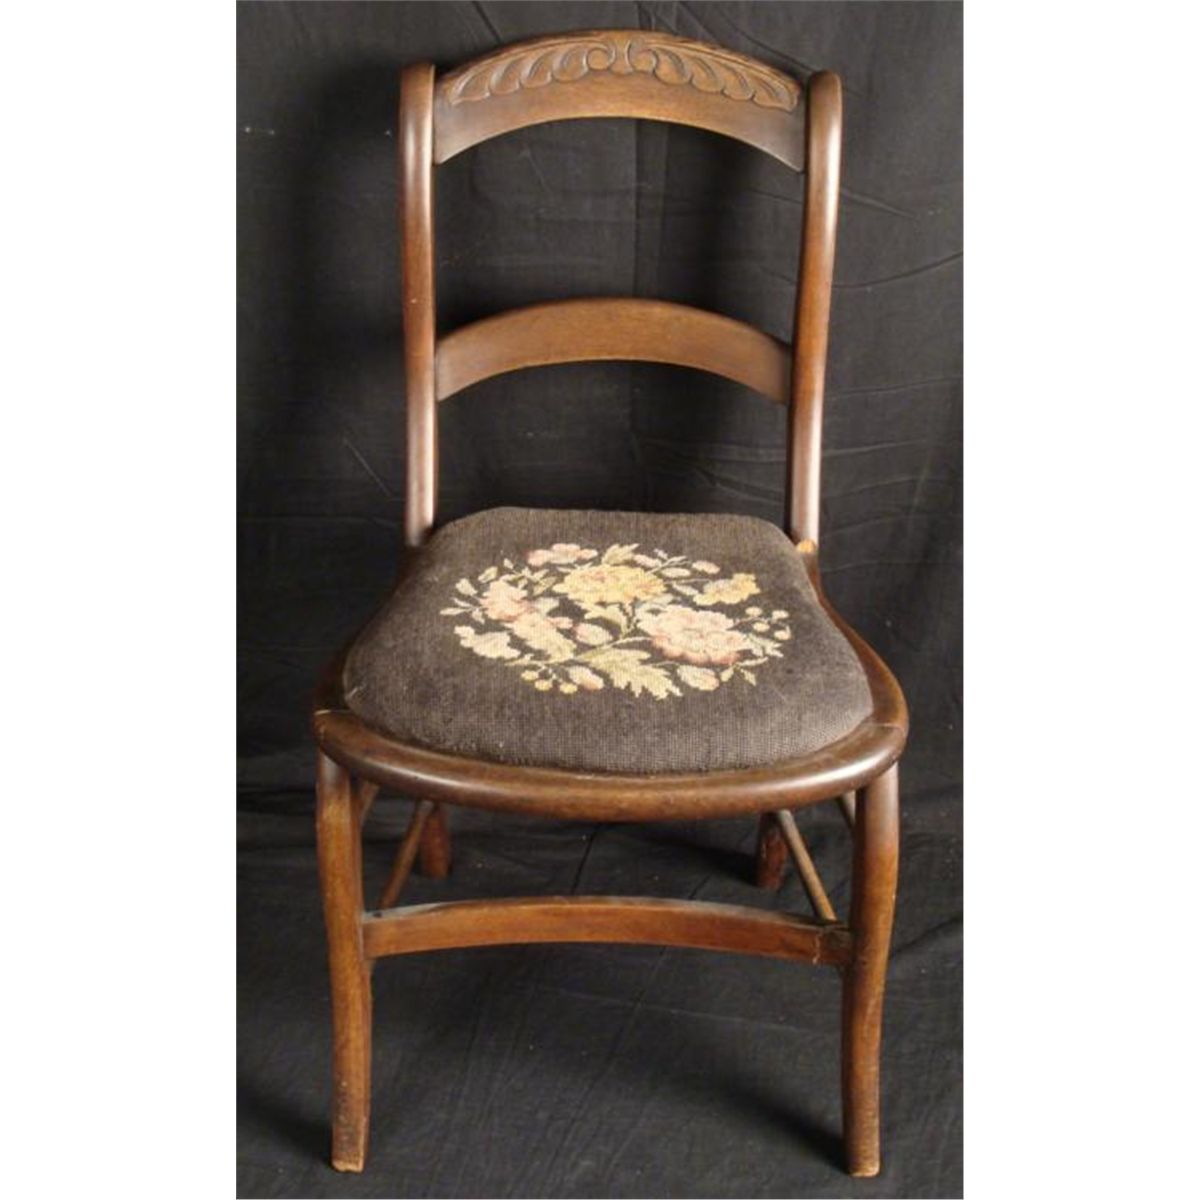 antique needlepoint chair inflatable stool chairs furniture